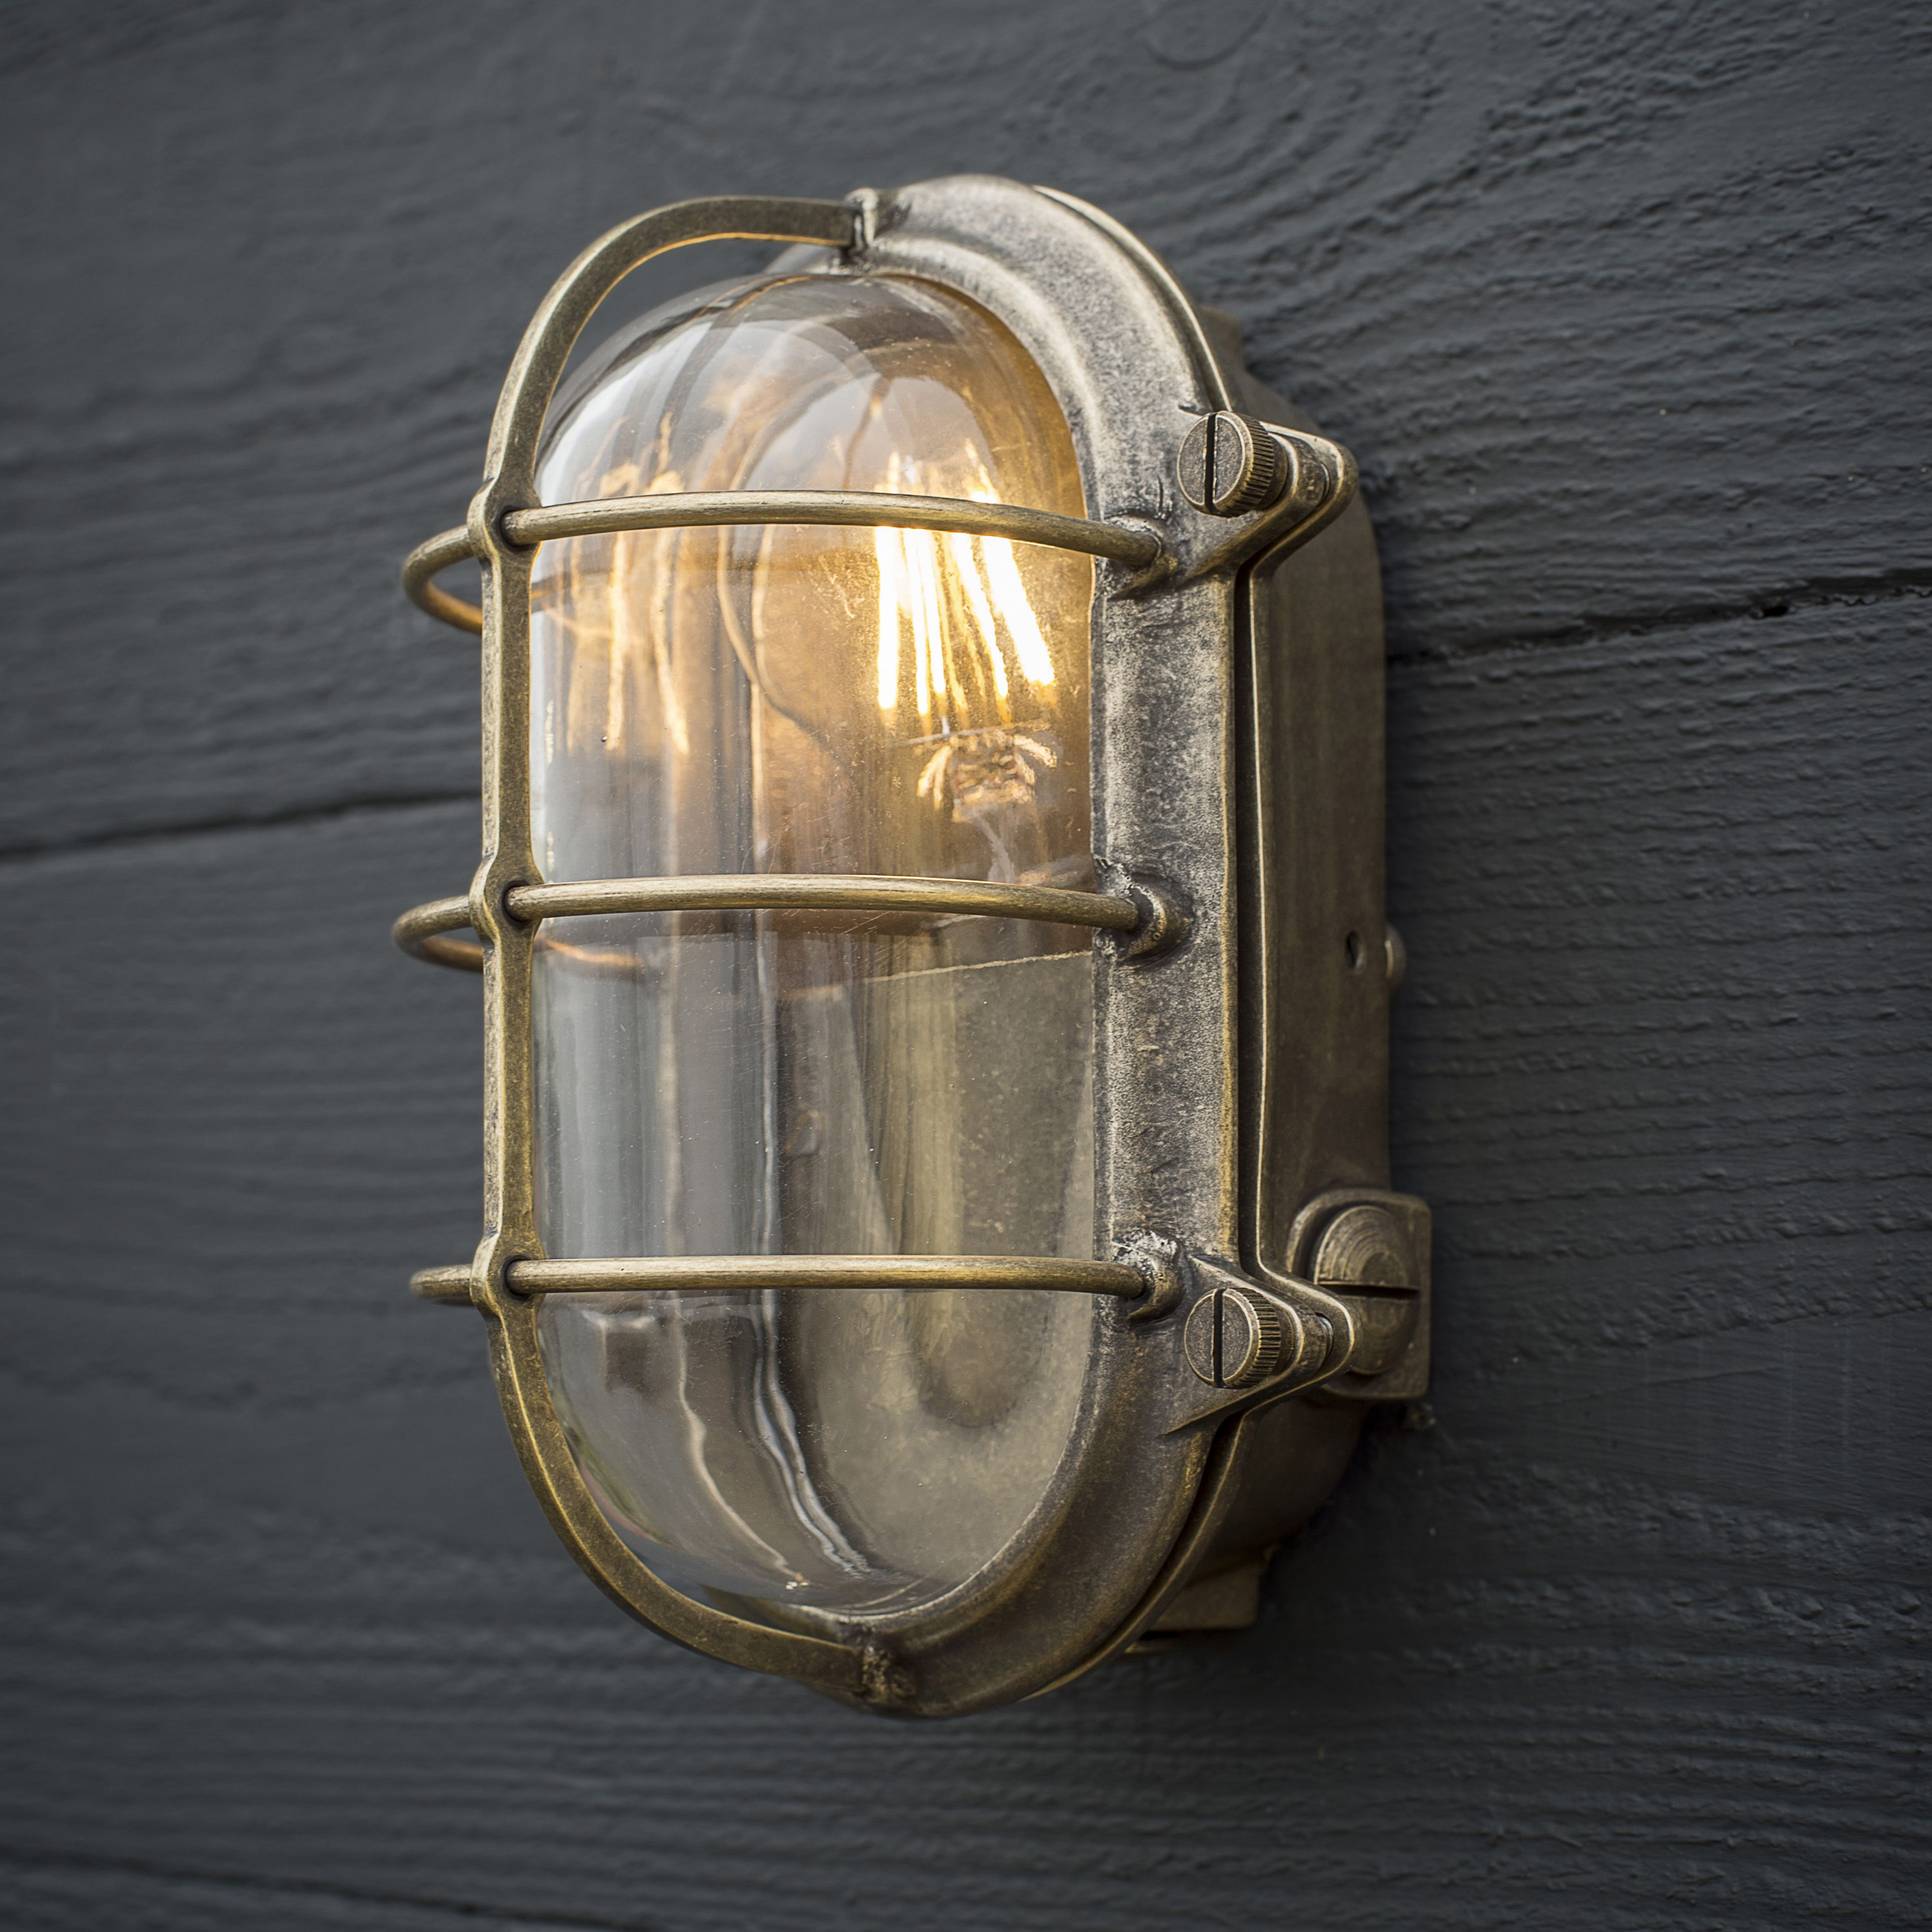 With Its Robust And Practical Styling Reminiscent Of Shipping And Days Gone By Our Bulkhead Wall Garden Wall Lights Brass Outdoor Lighting Outdoor Lighting